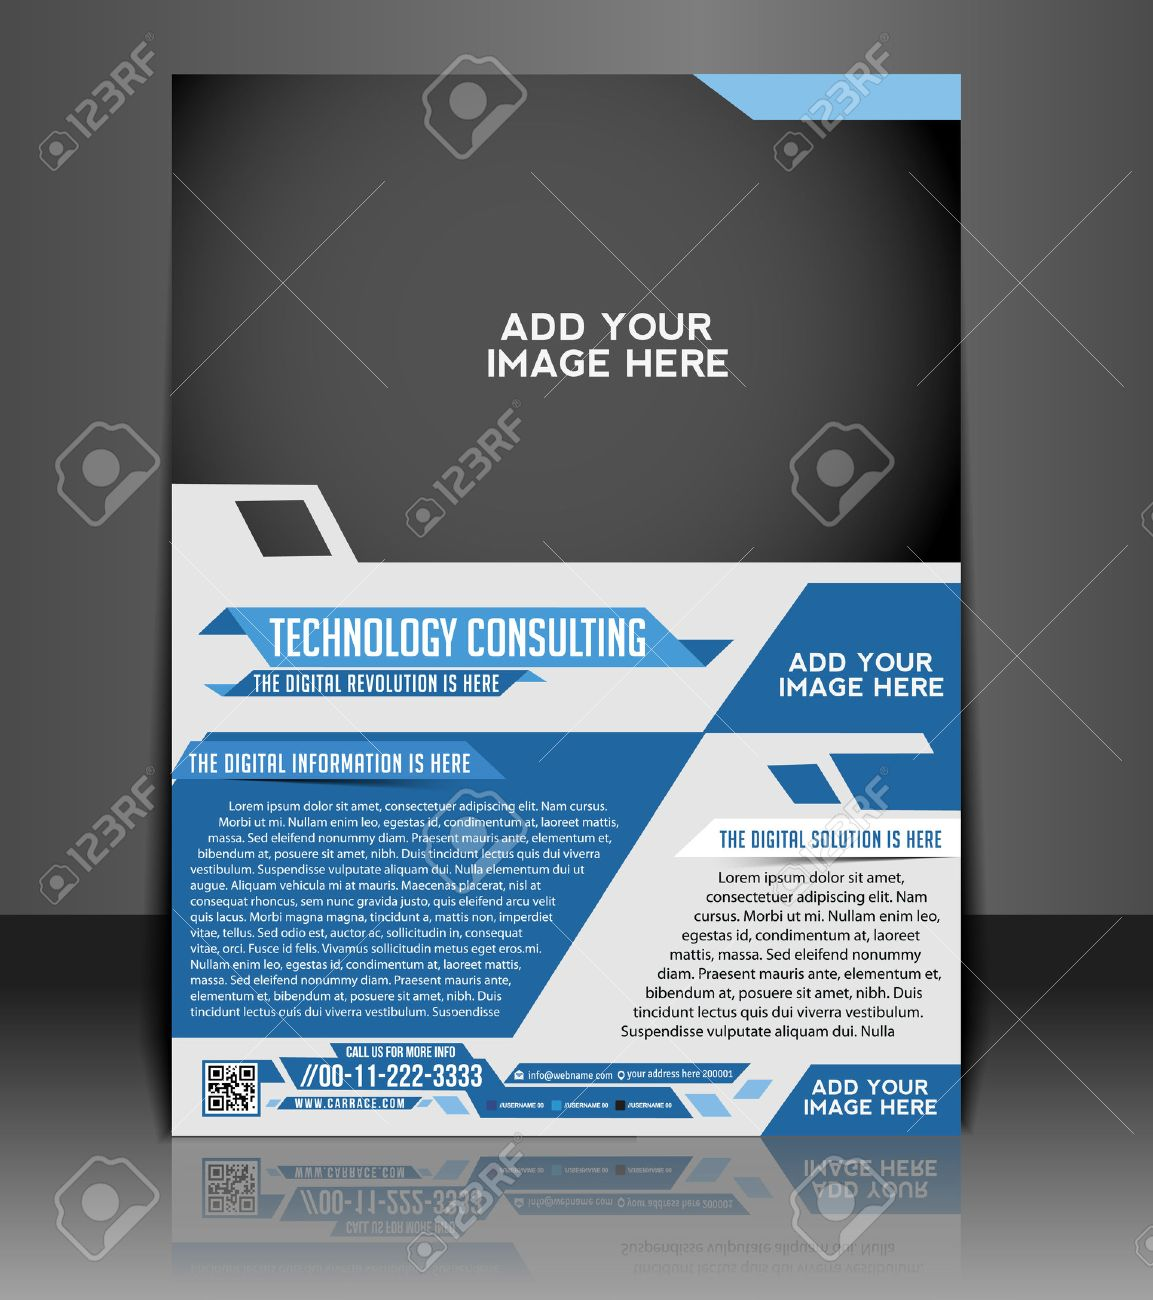 Technology Consulting Flyer & Poster Template Design Royalty Free ...